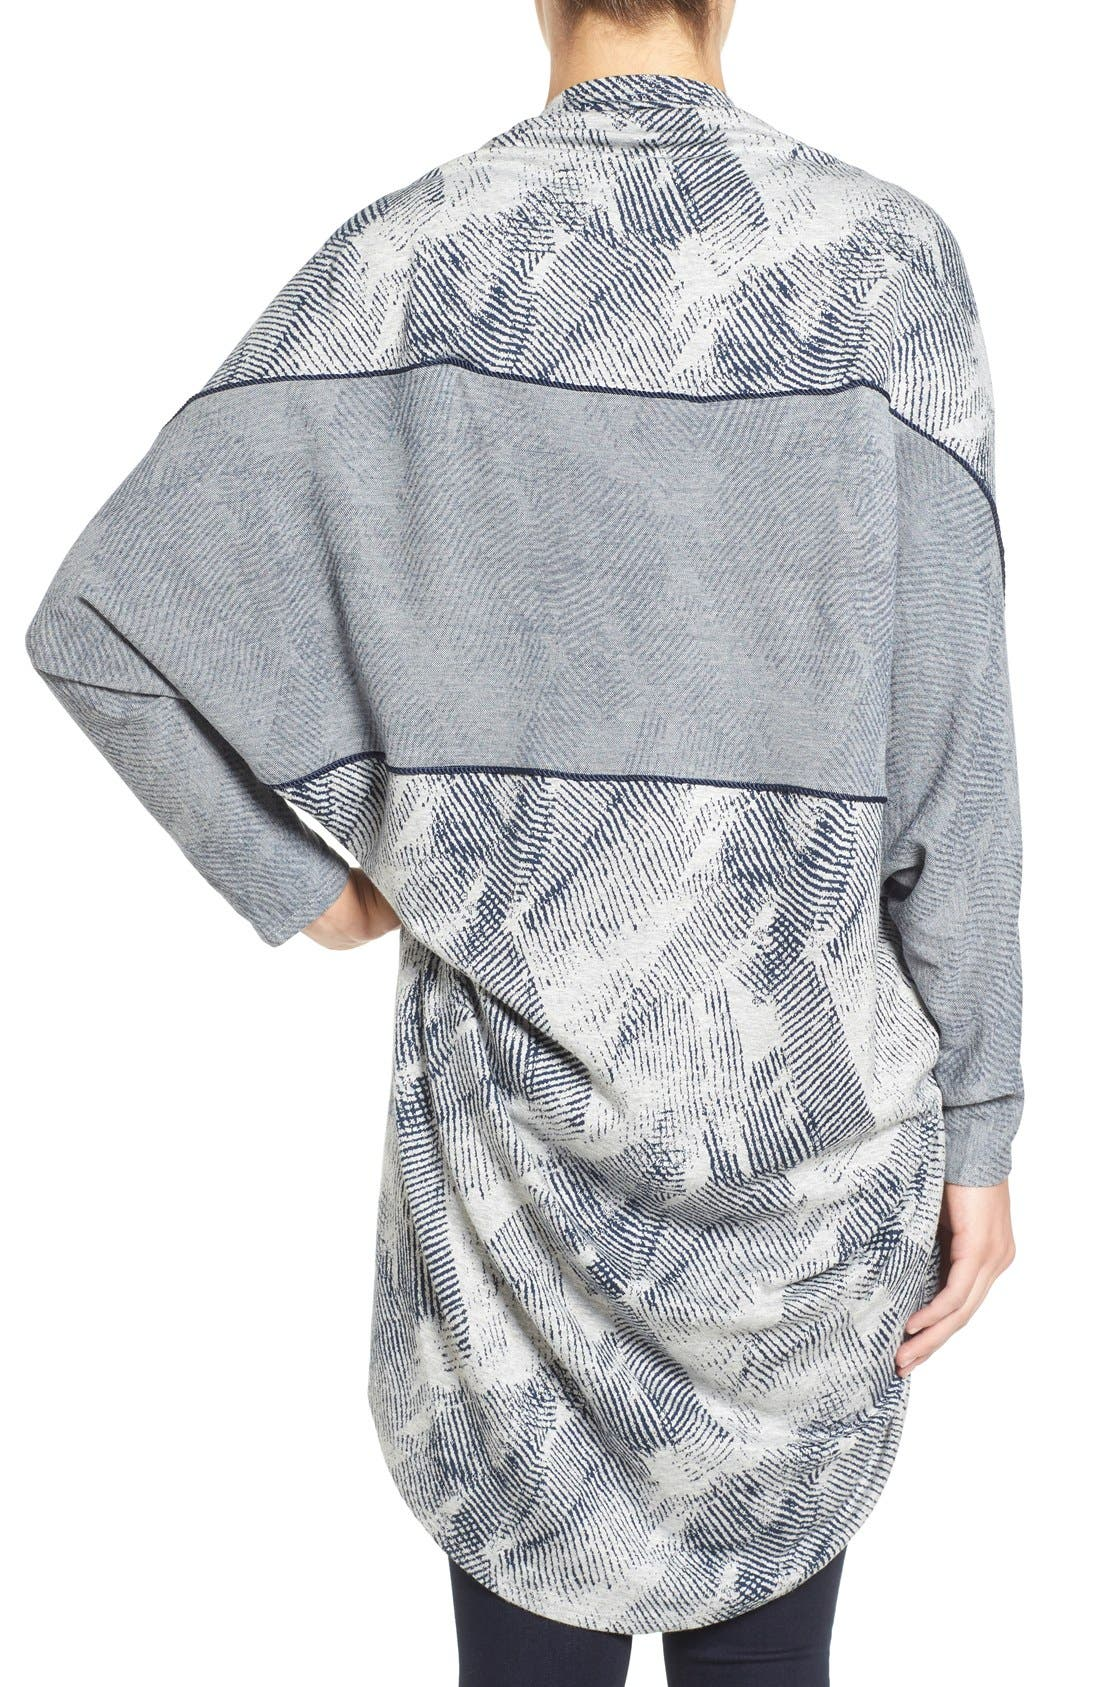 'Meesha' Open Front Maternity Cardigan,                             Alternate thumbnail 4, color,                             HEATHER GREY/NAVY